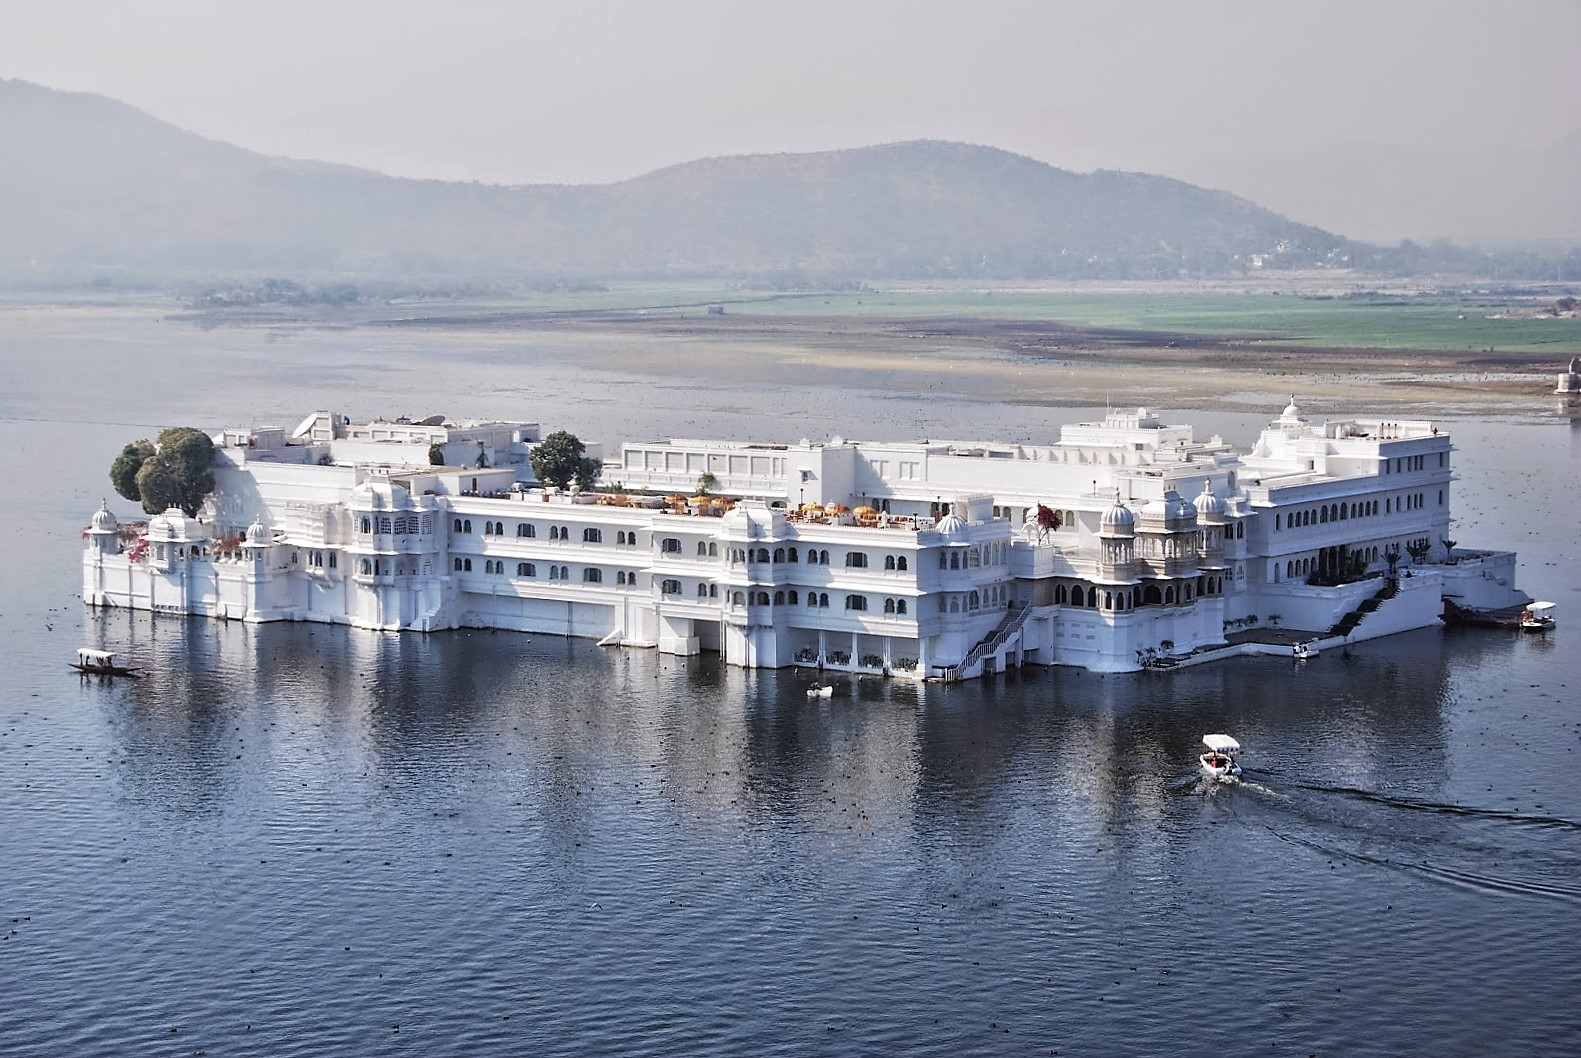 Trip to Udaipur in Rajasthan during Independence Day wallpapers images